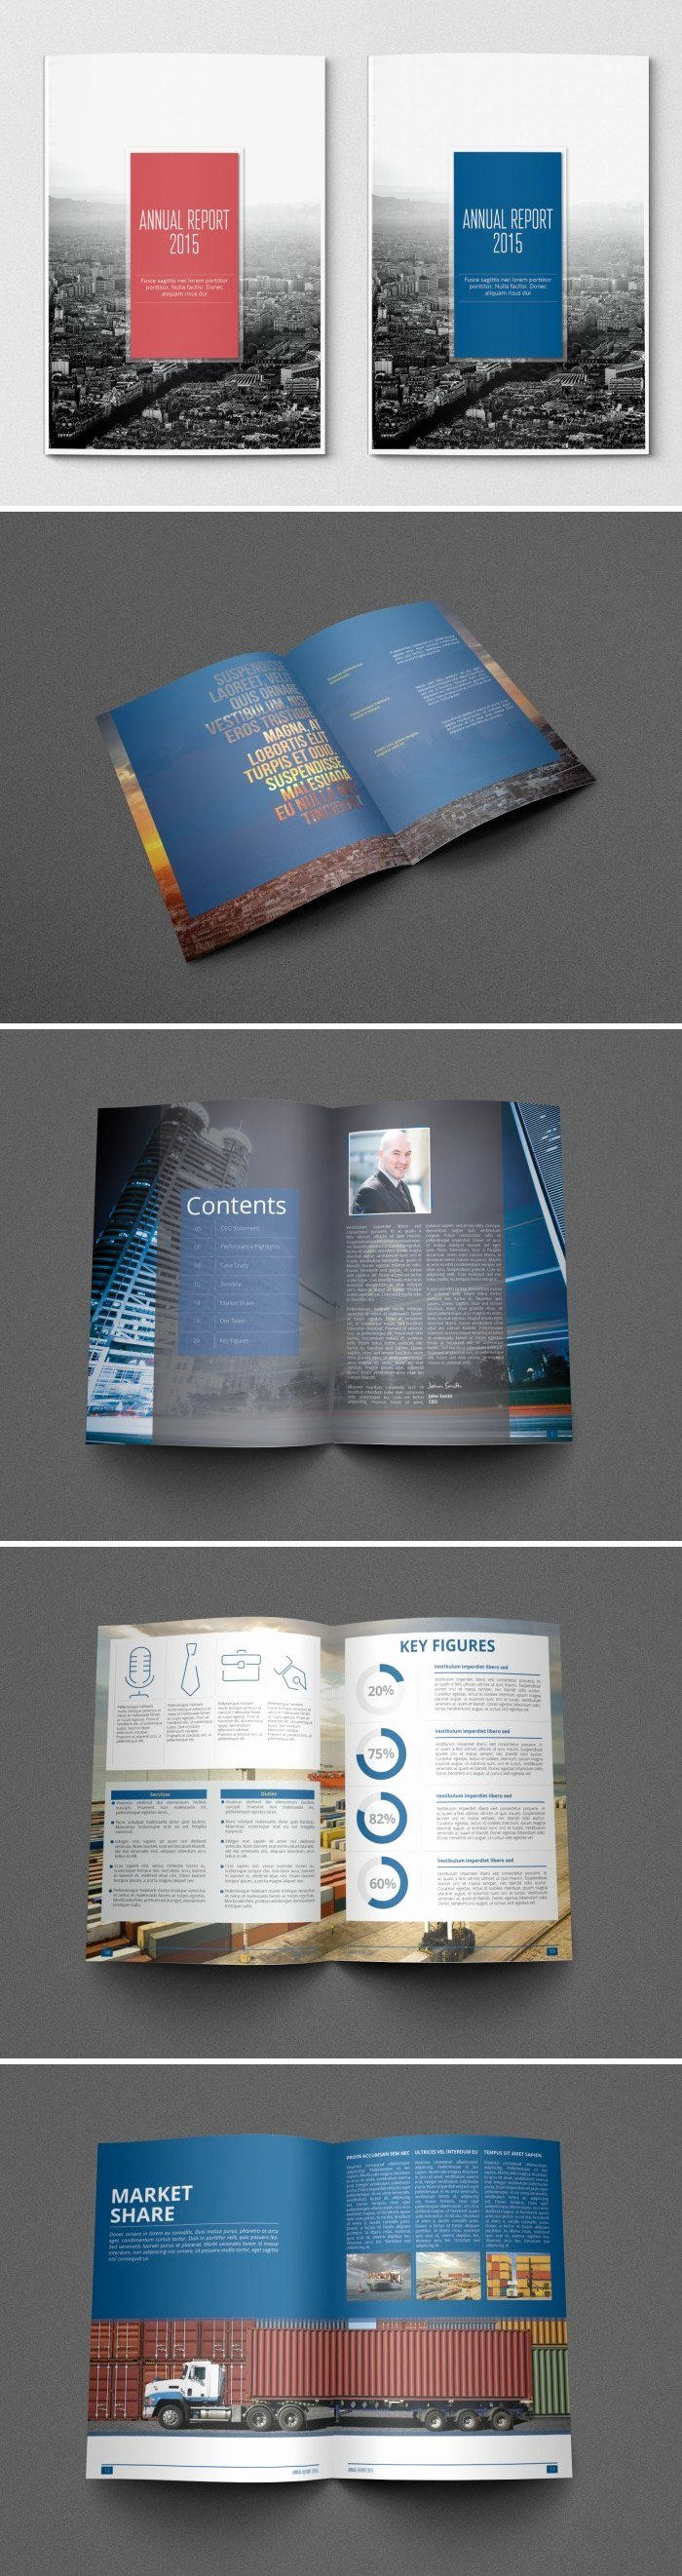 Annual Financial Report Template Inspirational A Showcase Of Annual Report Brochure Designs to Check Out